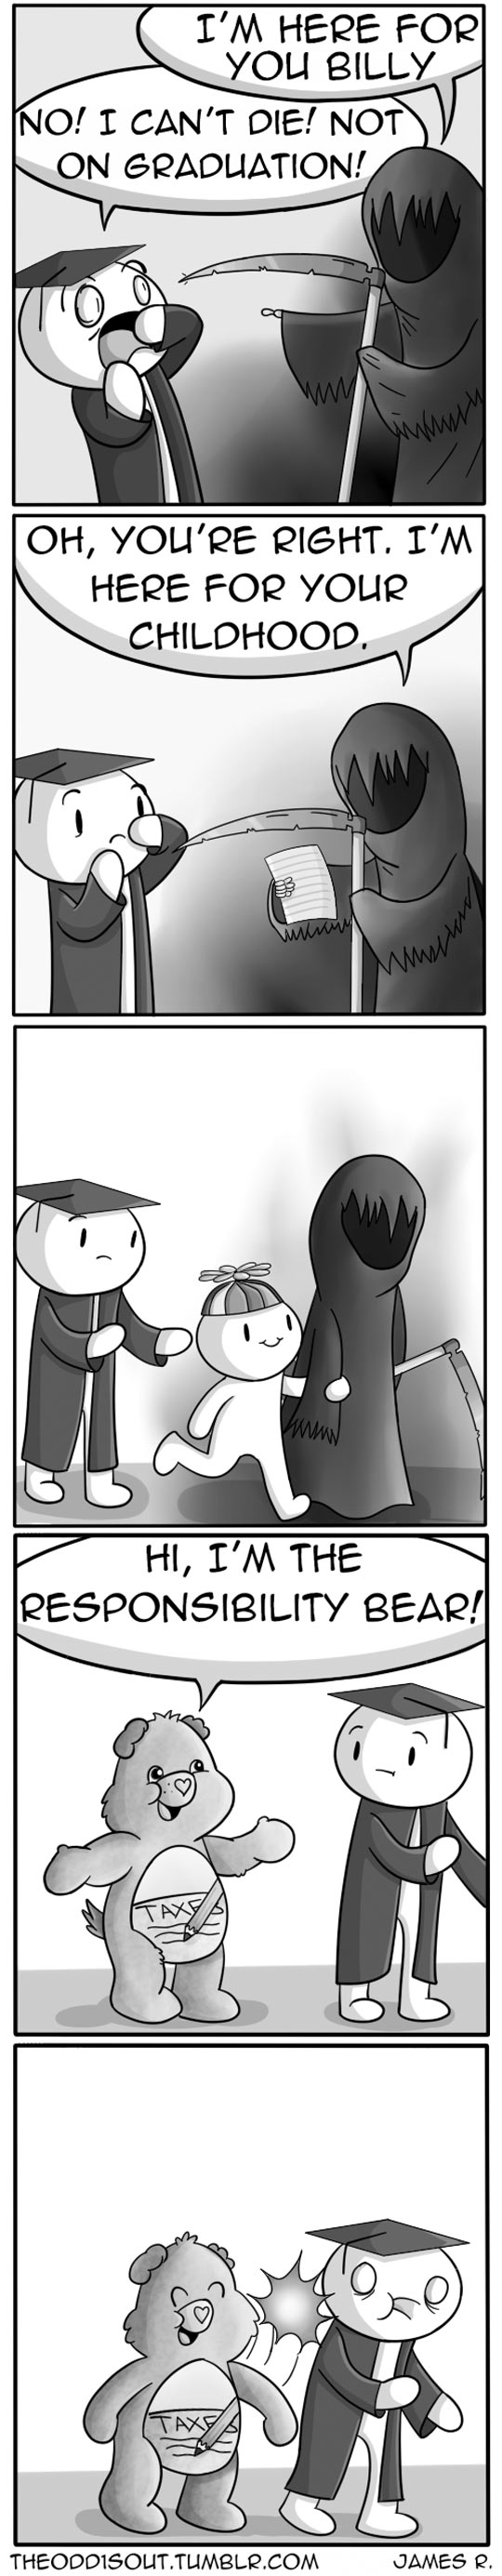 funny-picture-death-graduation-day-comic